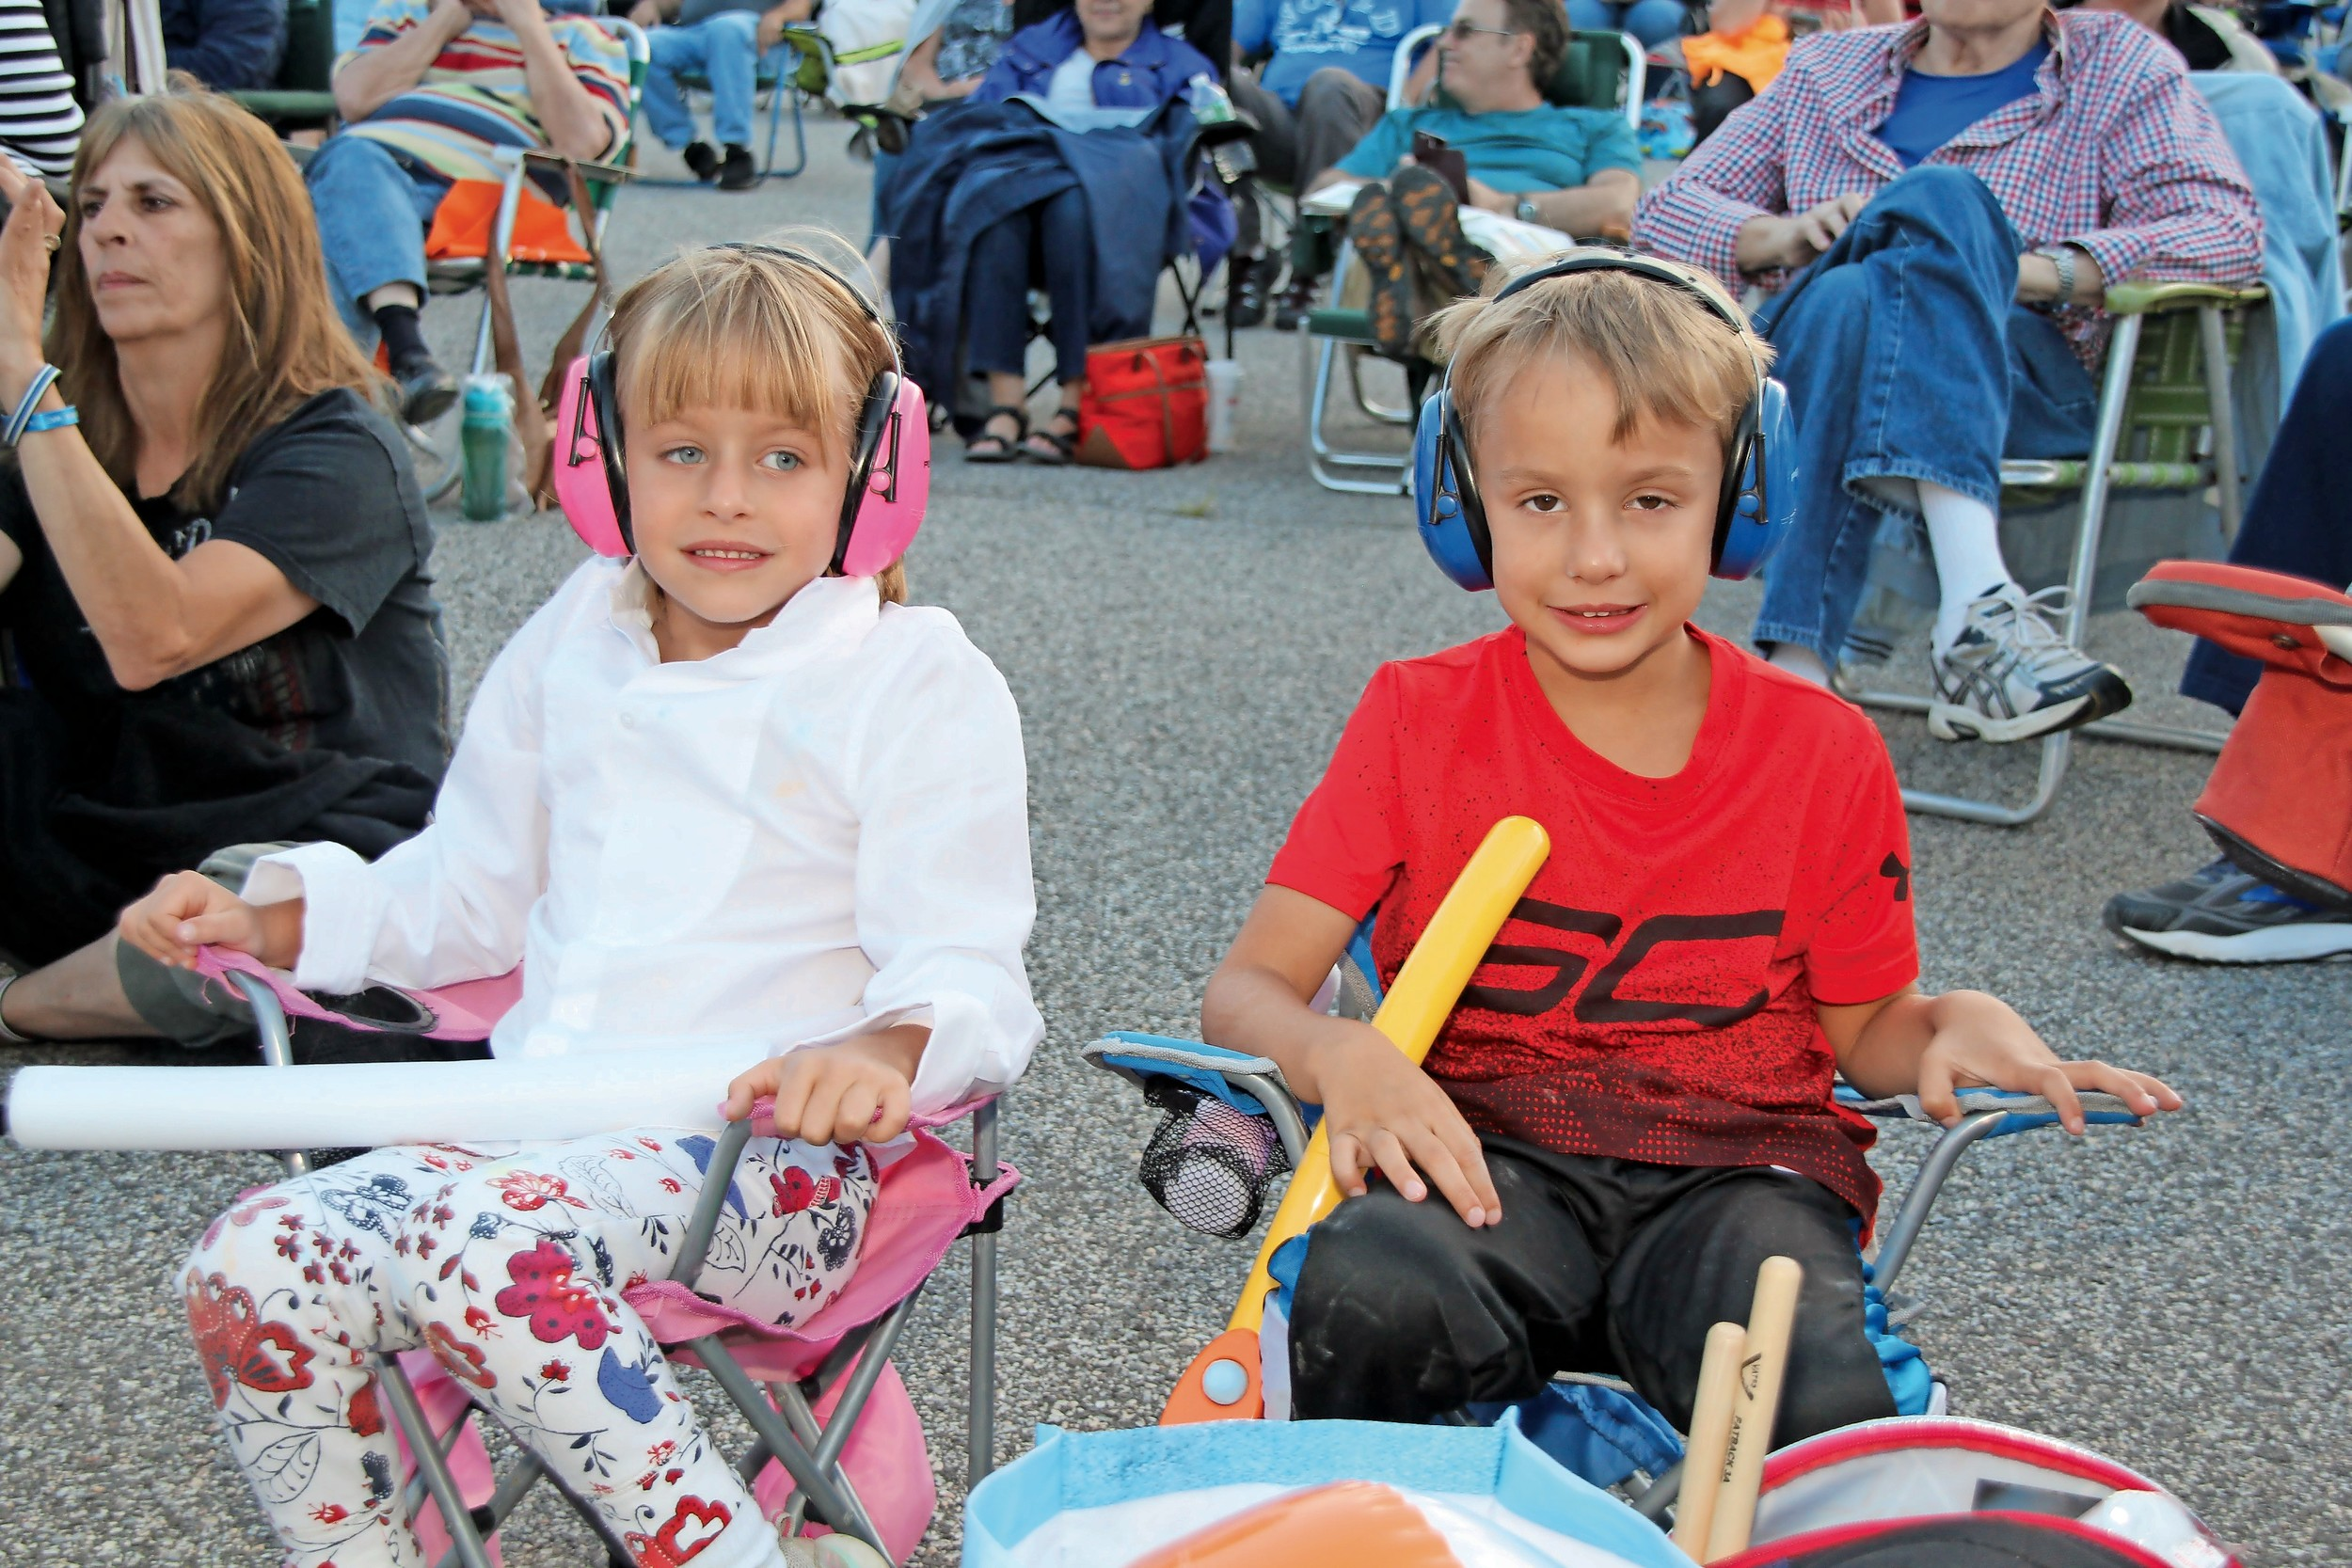 Twins Christopher and Isabelle Seely, 5, wore protective headphones while taking in the sounds of Captain Jack, a Billy Joel cover band that performed at the Seaford Public Library on July 29.